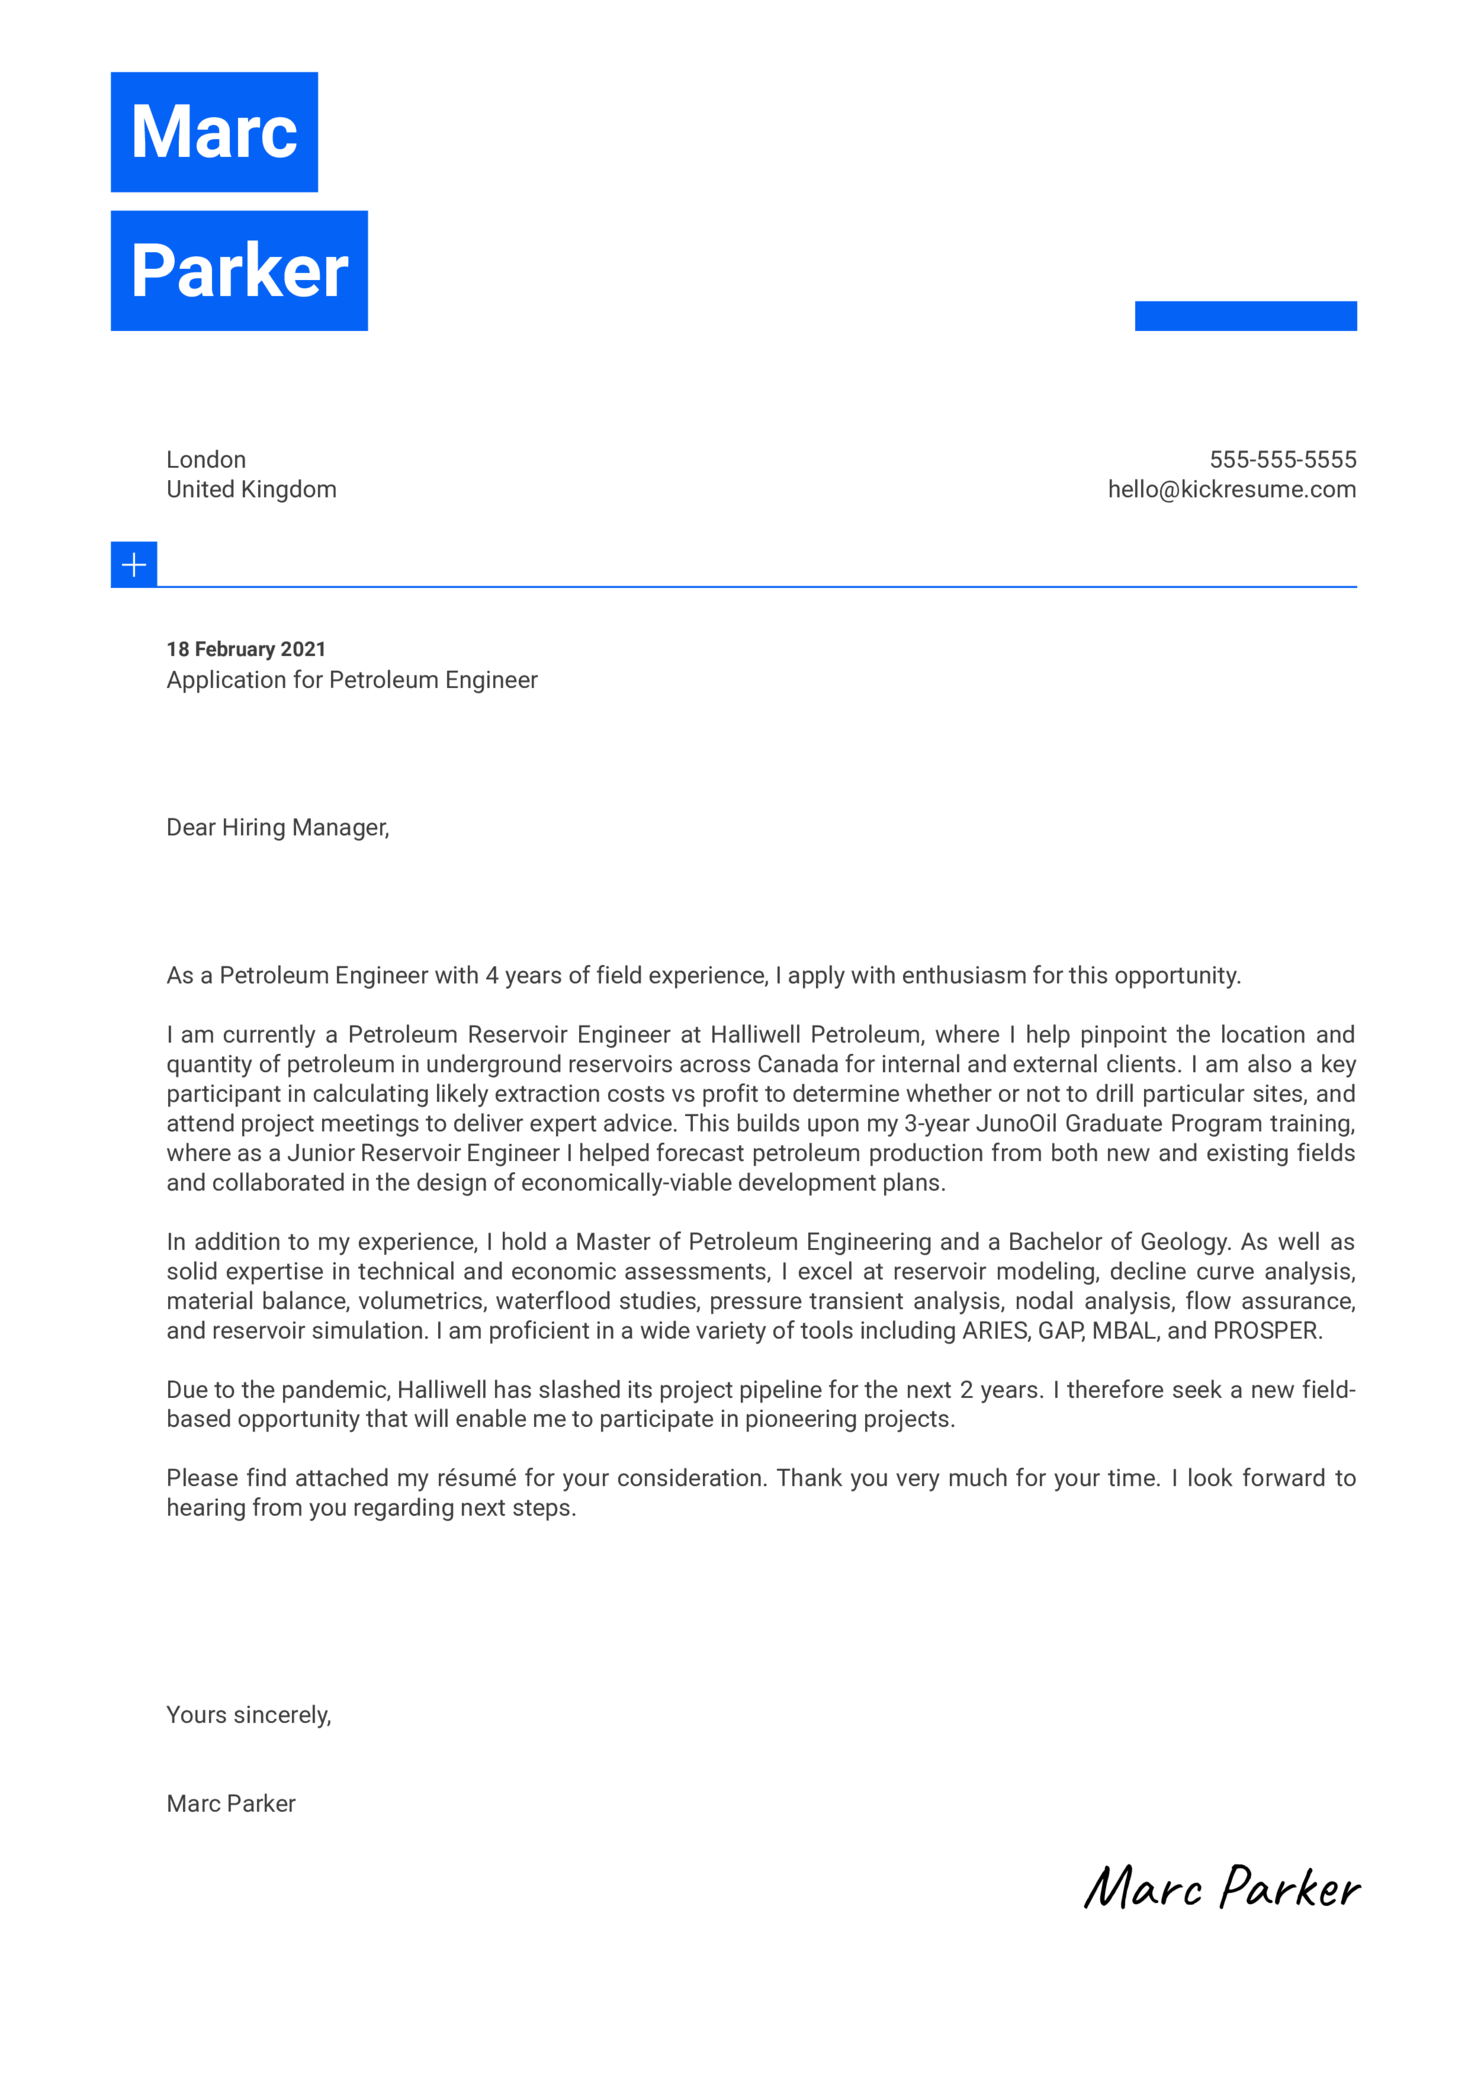 Petroleum Engineer Cover Letter Example